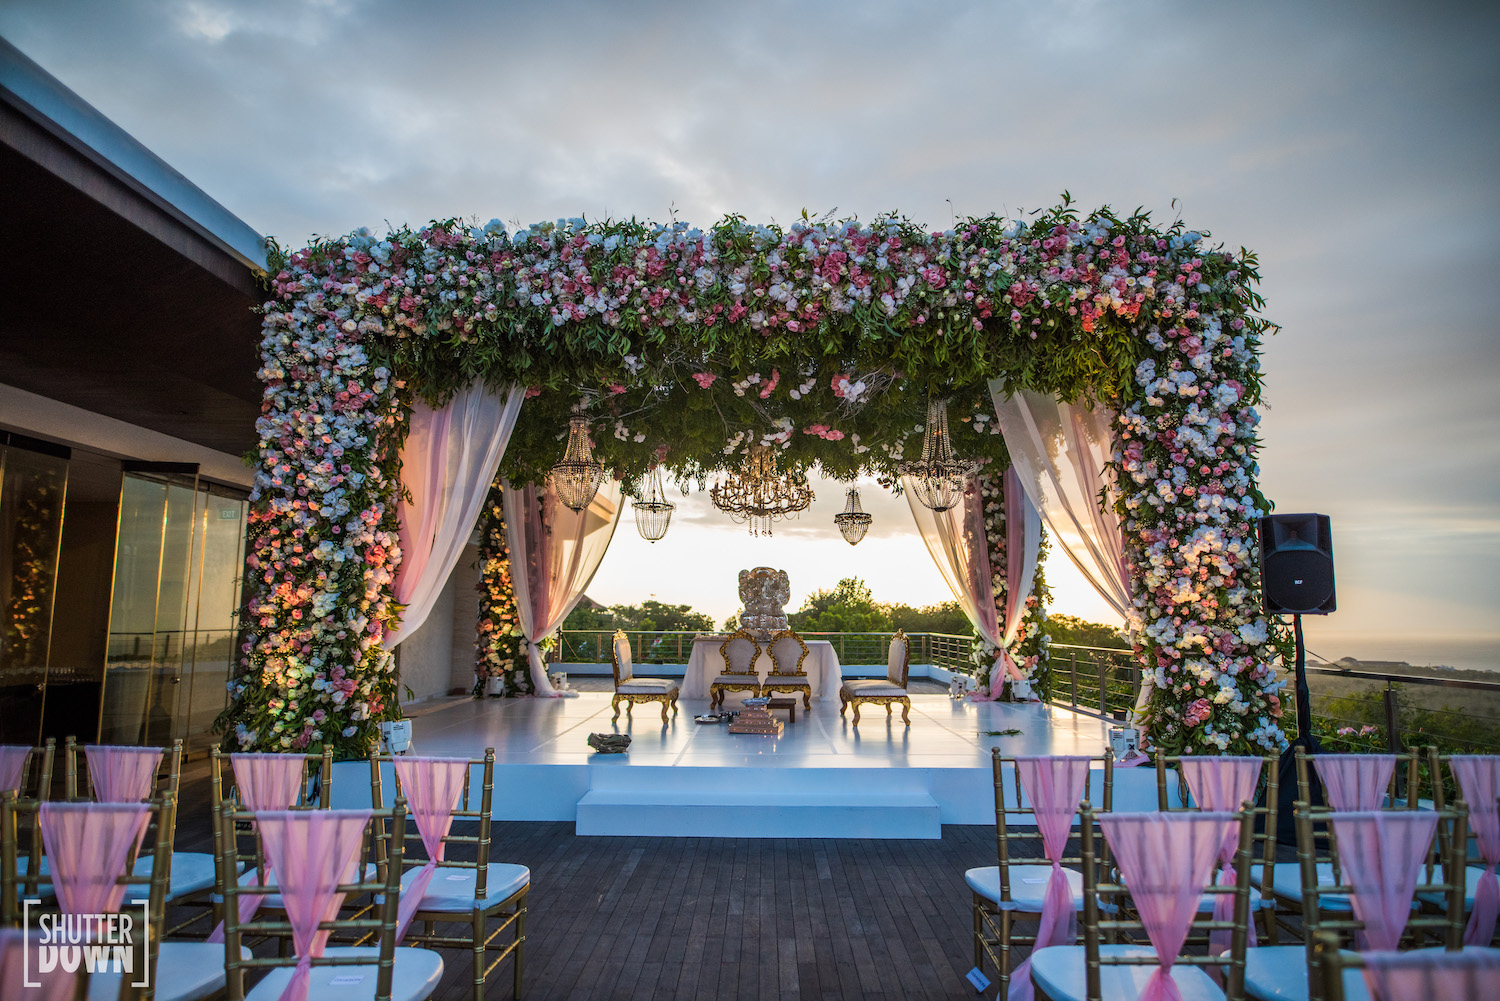 open terrace mandap with floral decoration and Chandelier